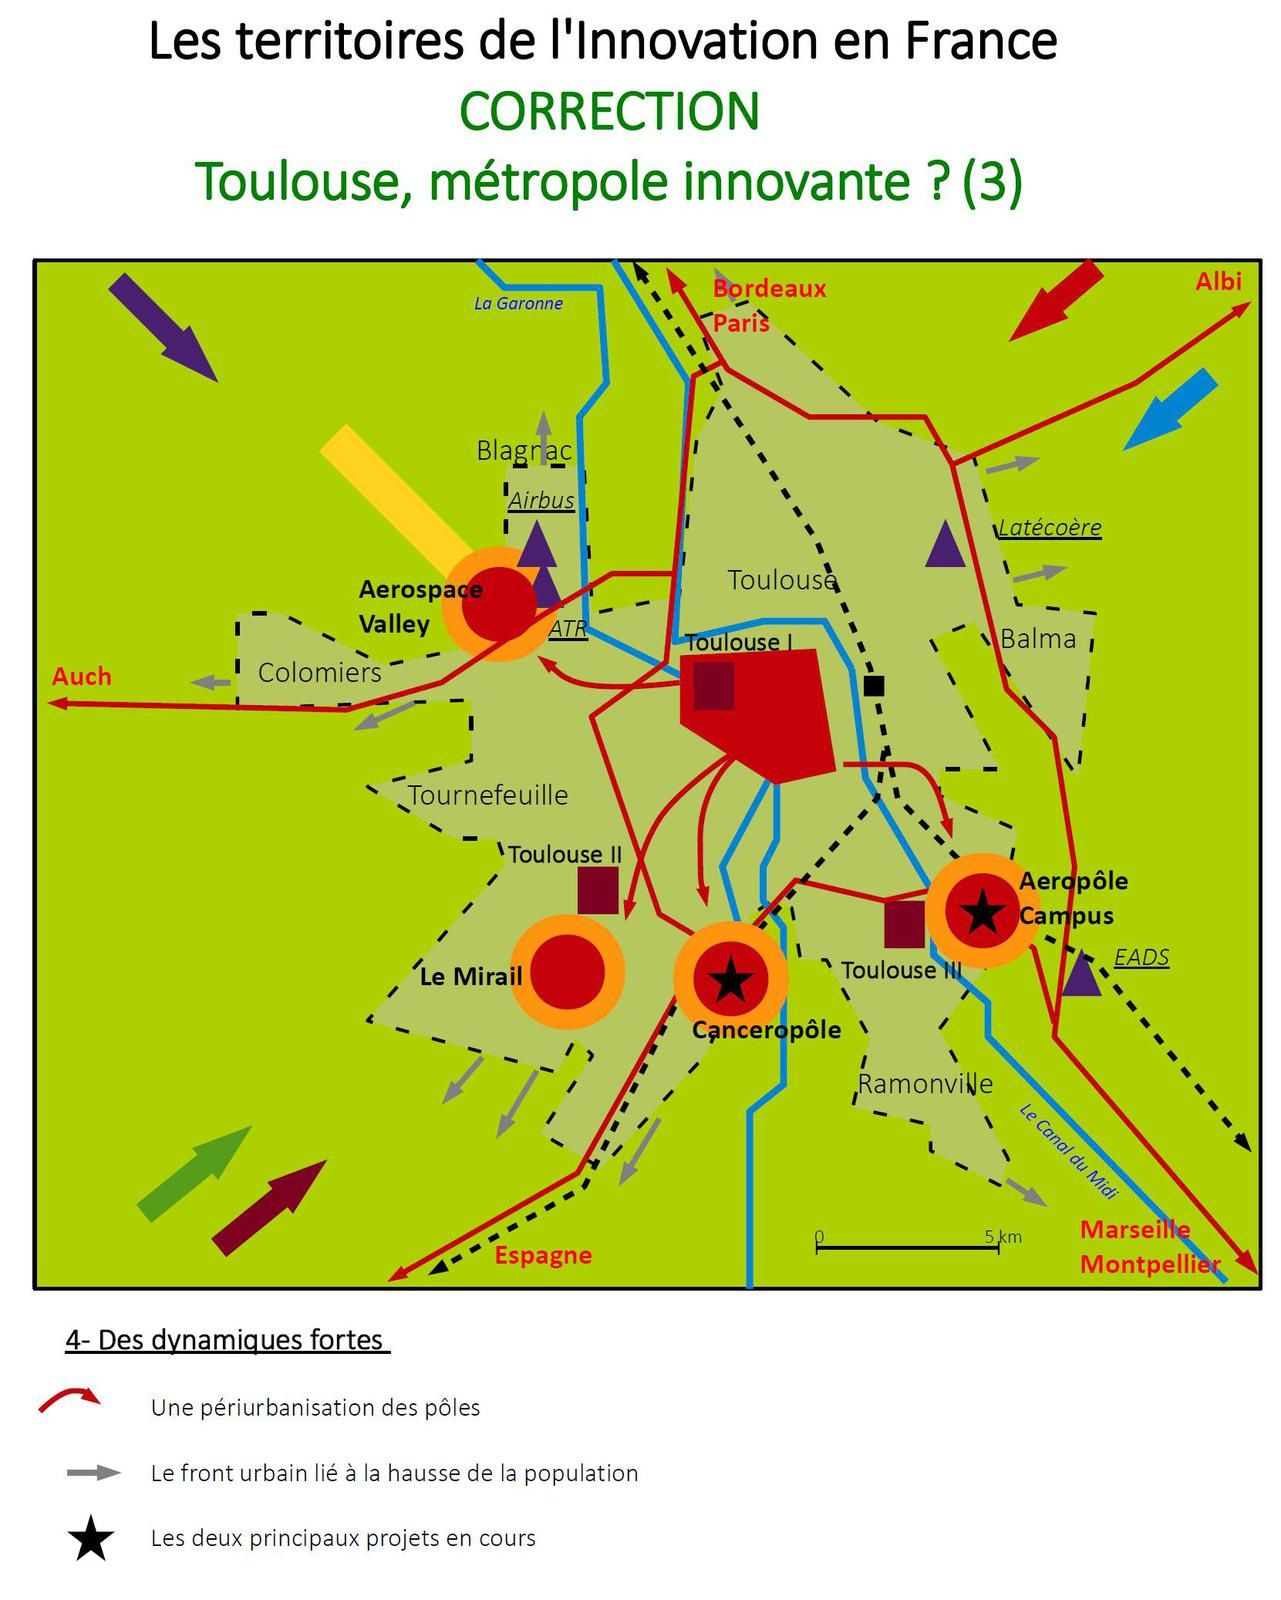 Les territoires de l'innovation CORRECTION